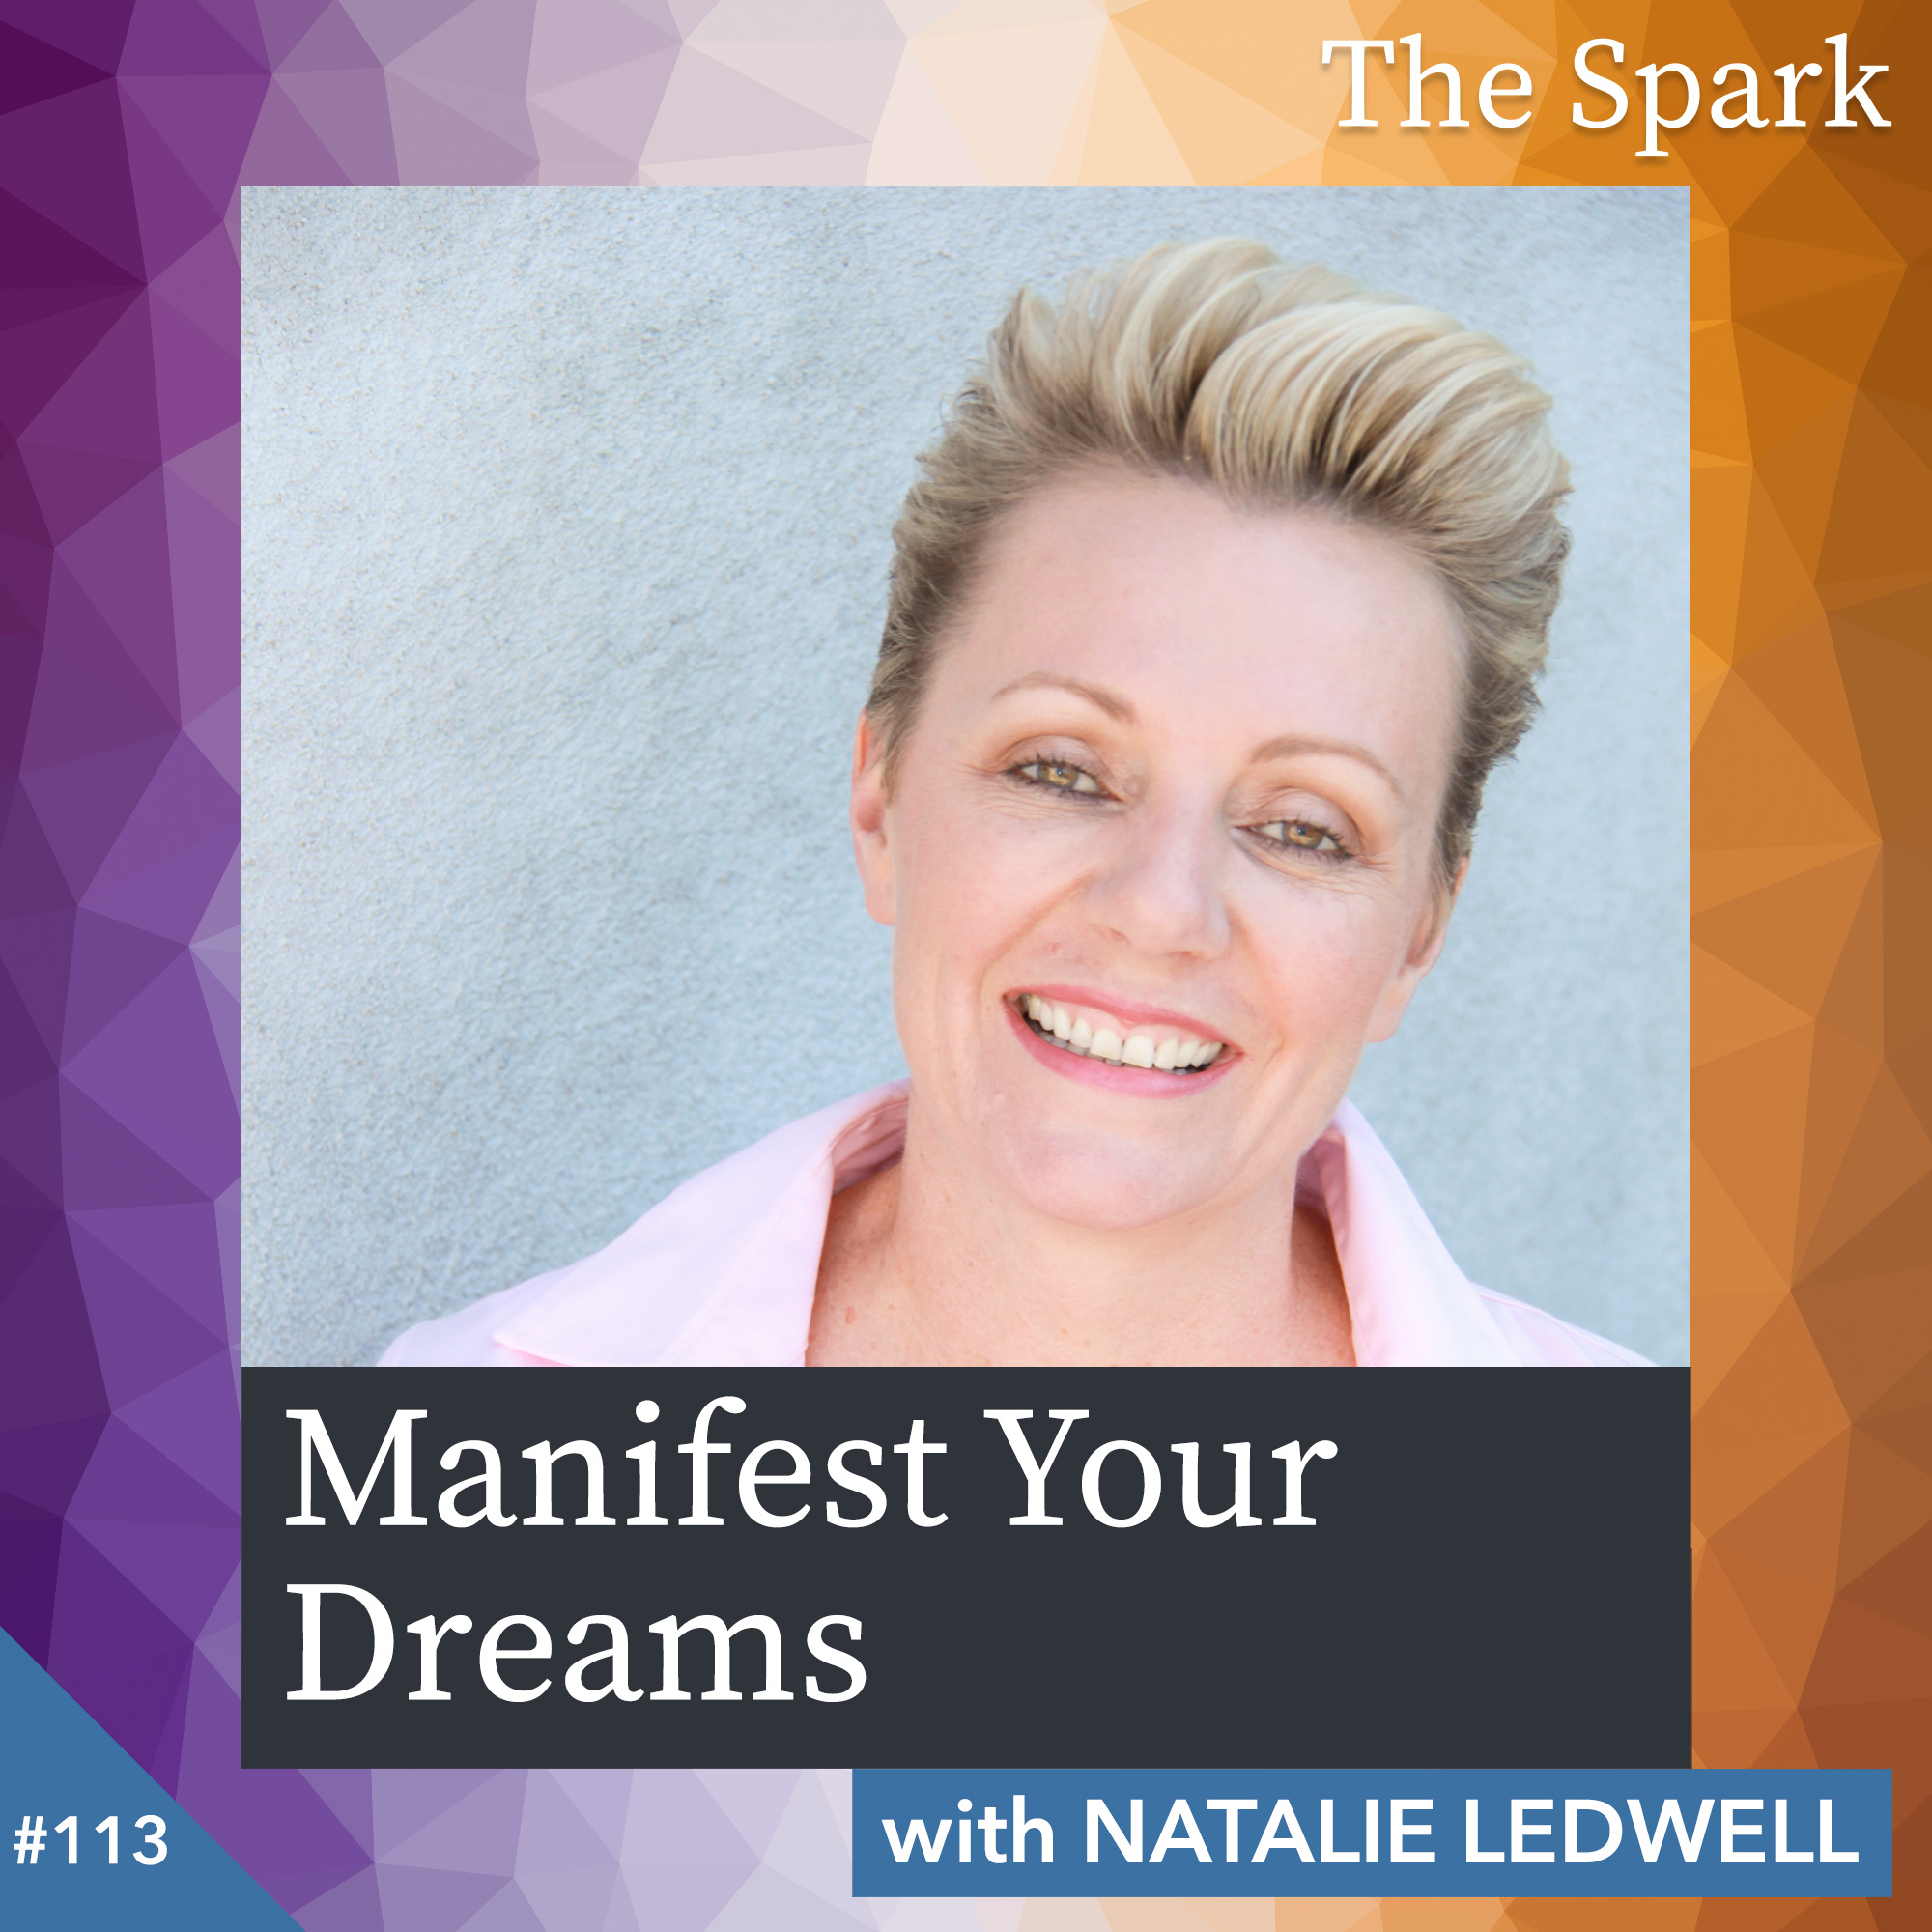 Manifest Your Dreams with Natalie Ledwell